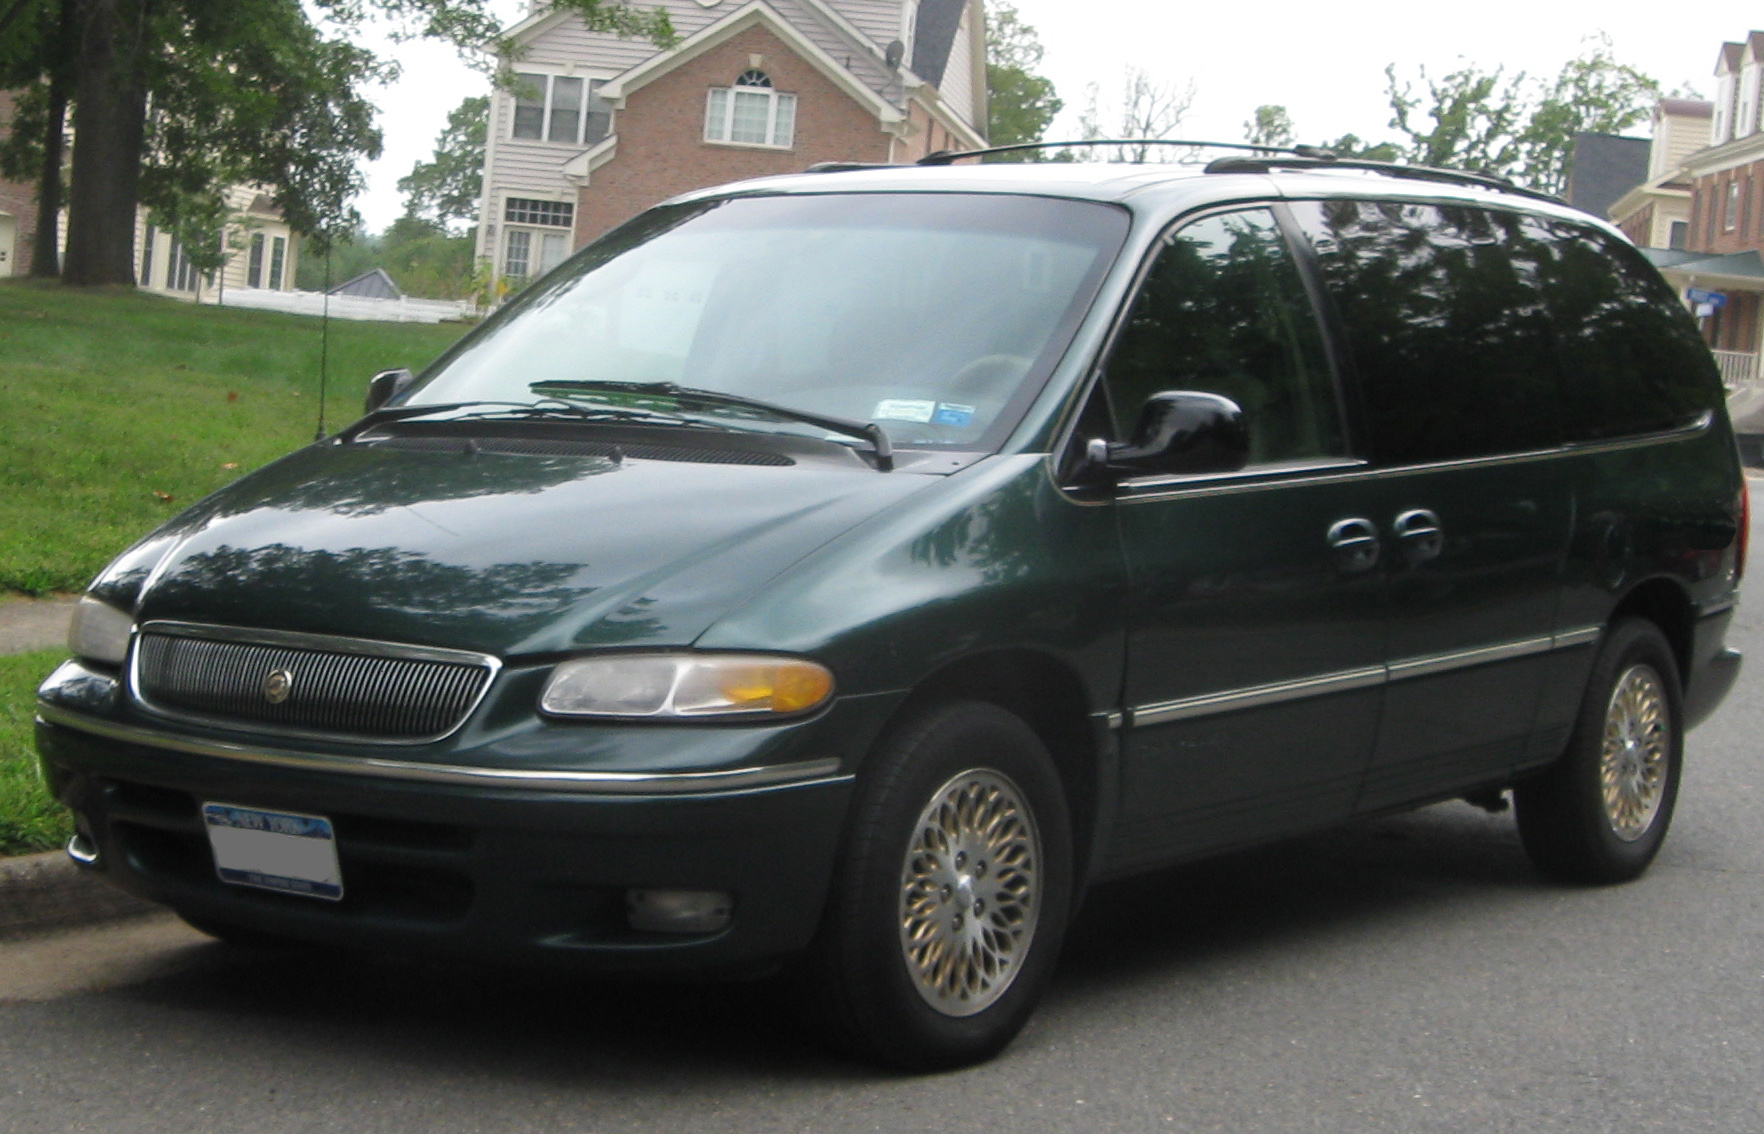 file chrysler town country 09 07 wikimedia commons. Cars Review. Best American Auto & Cars Review